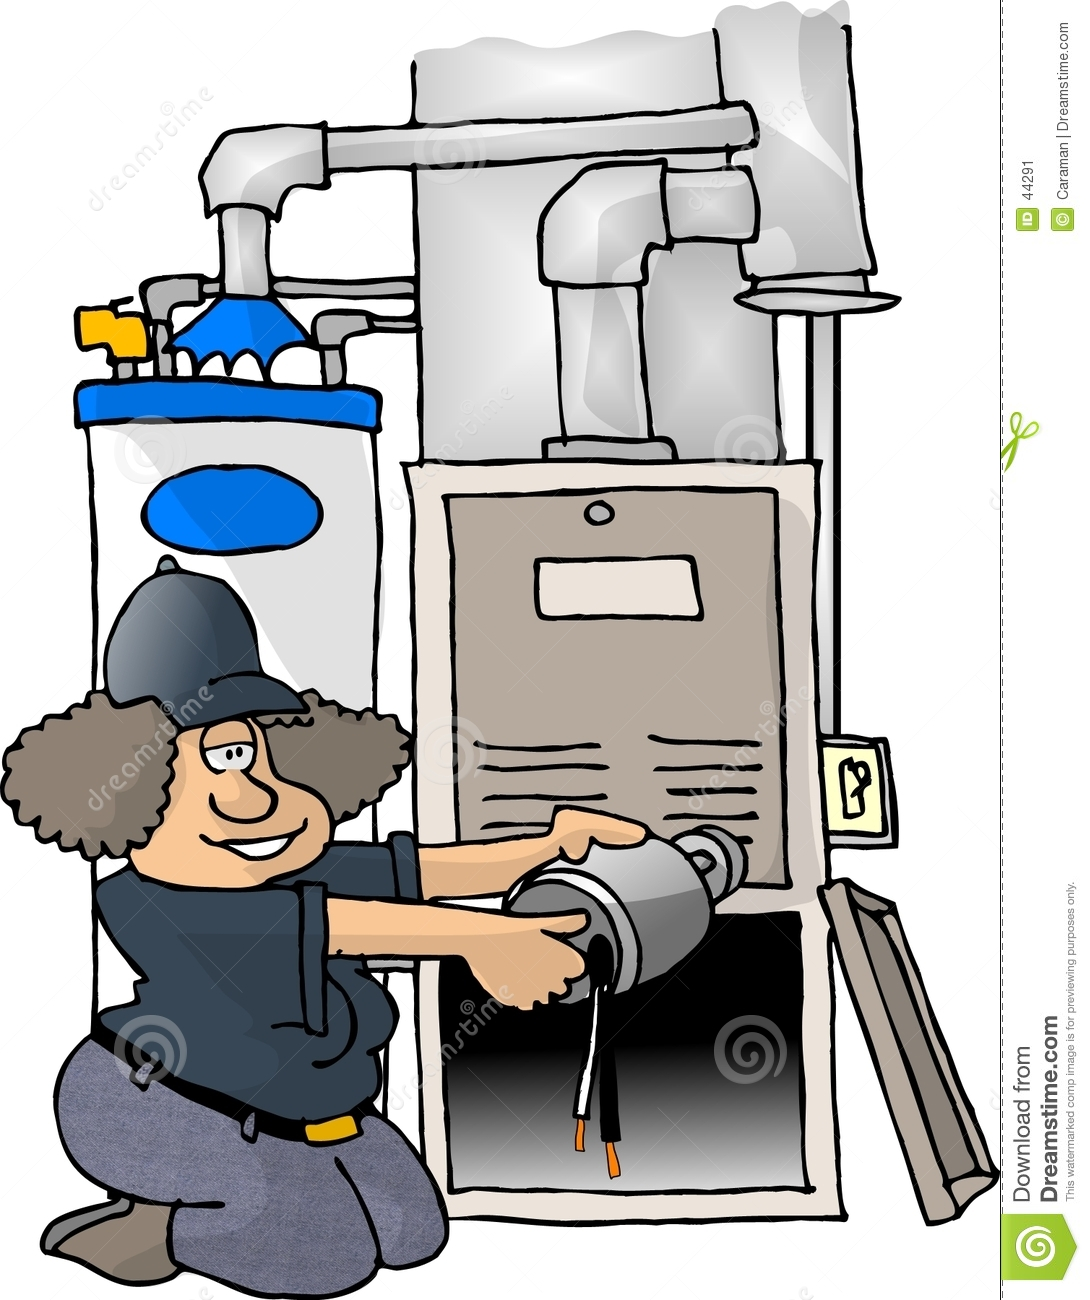 Forced Air Propane Heater >> Furnace Repair Stock Image - Image: 44291